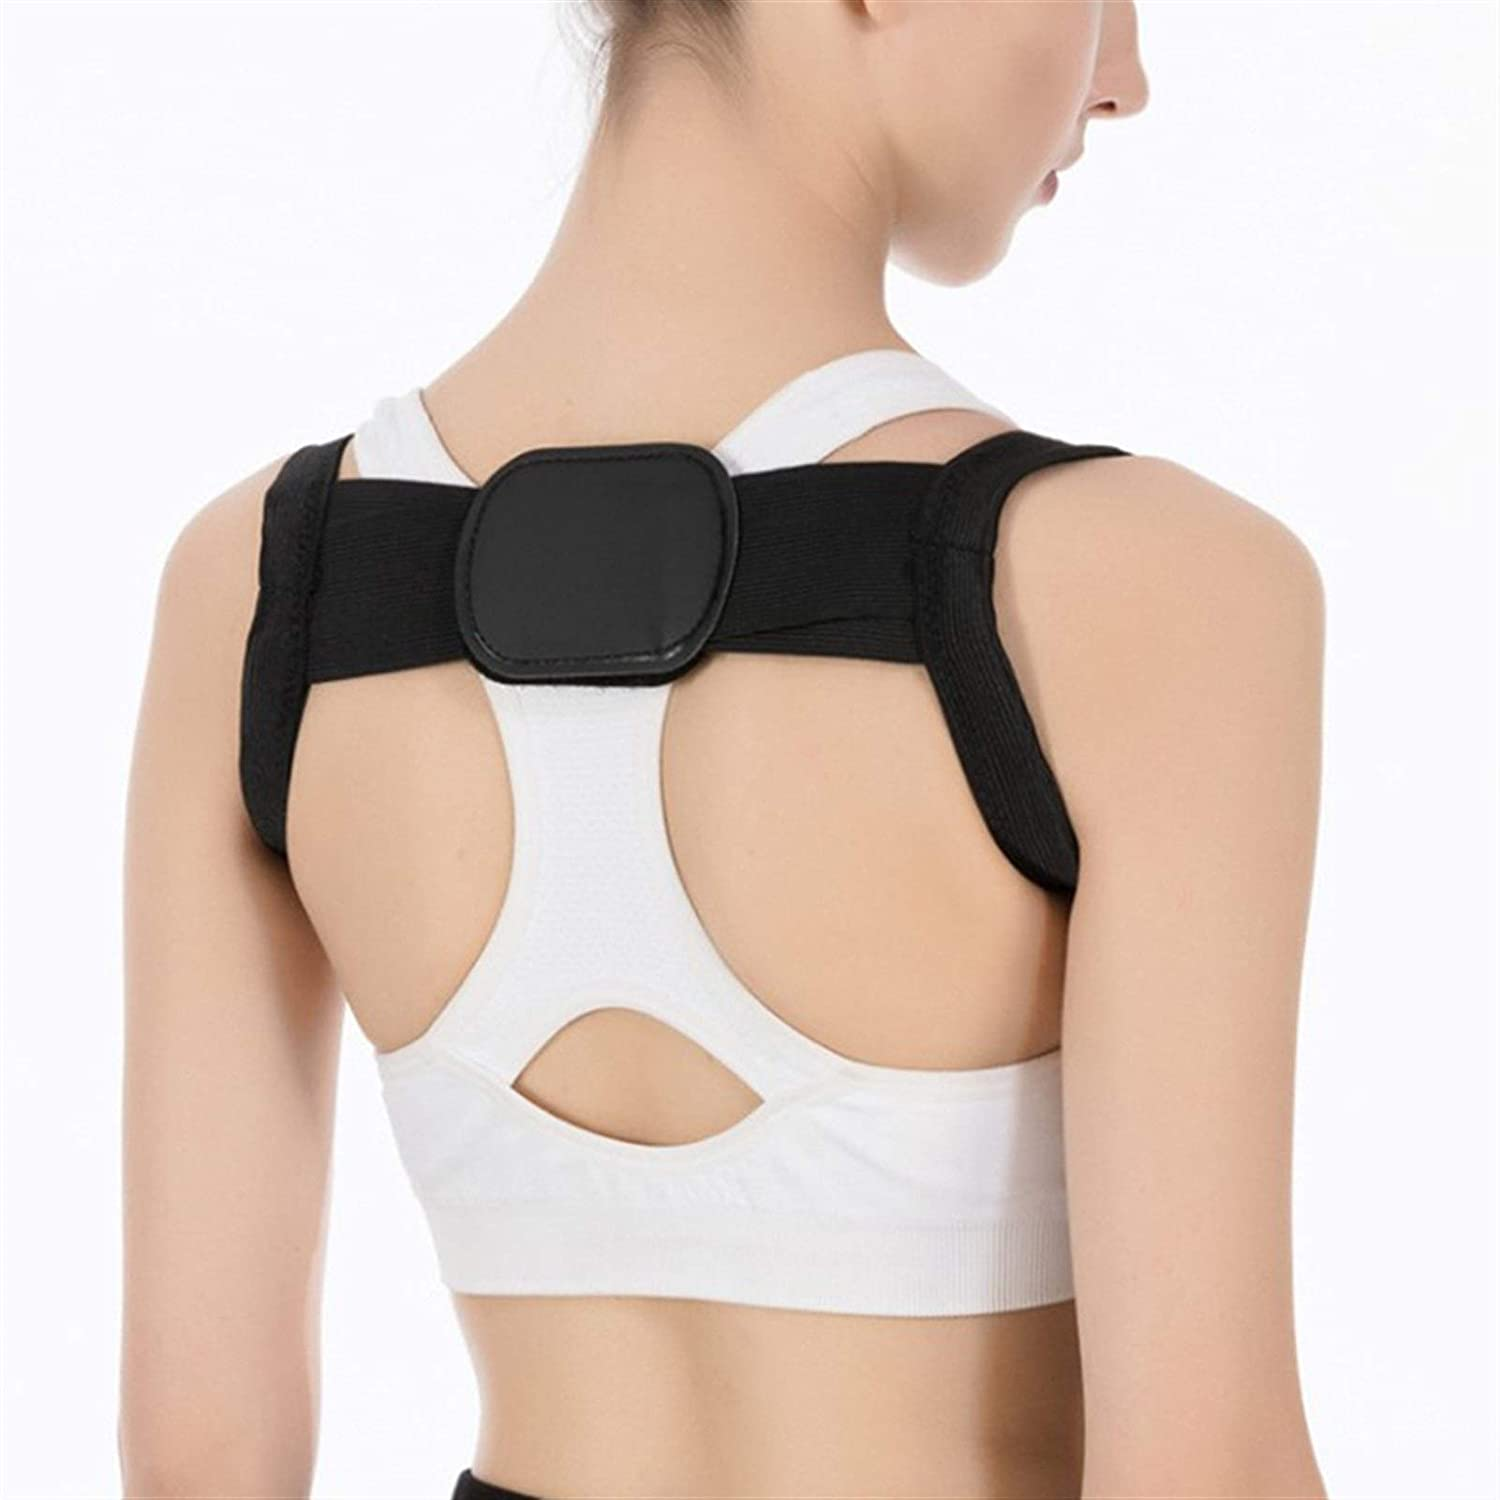 HELLEN Posture Back Corrector Correcti All items free Over item handling ☆ shipping Support Shoulder Straight